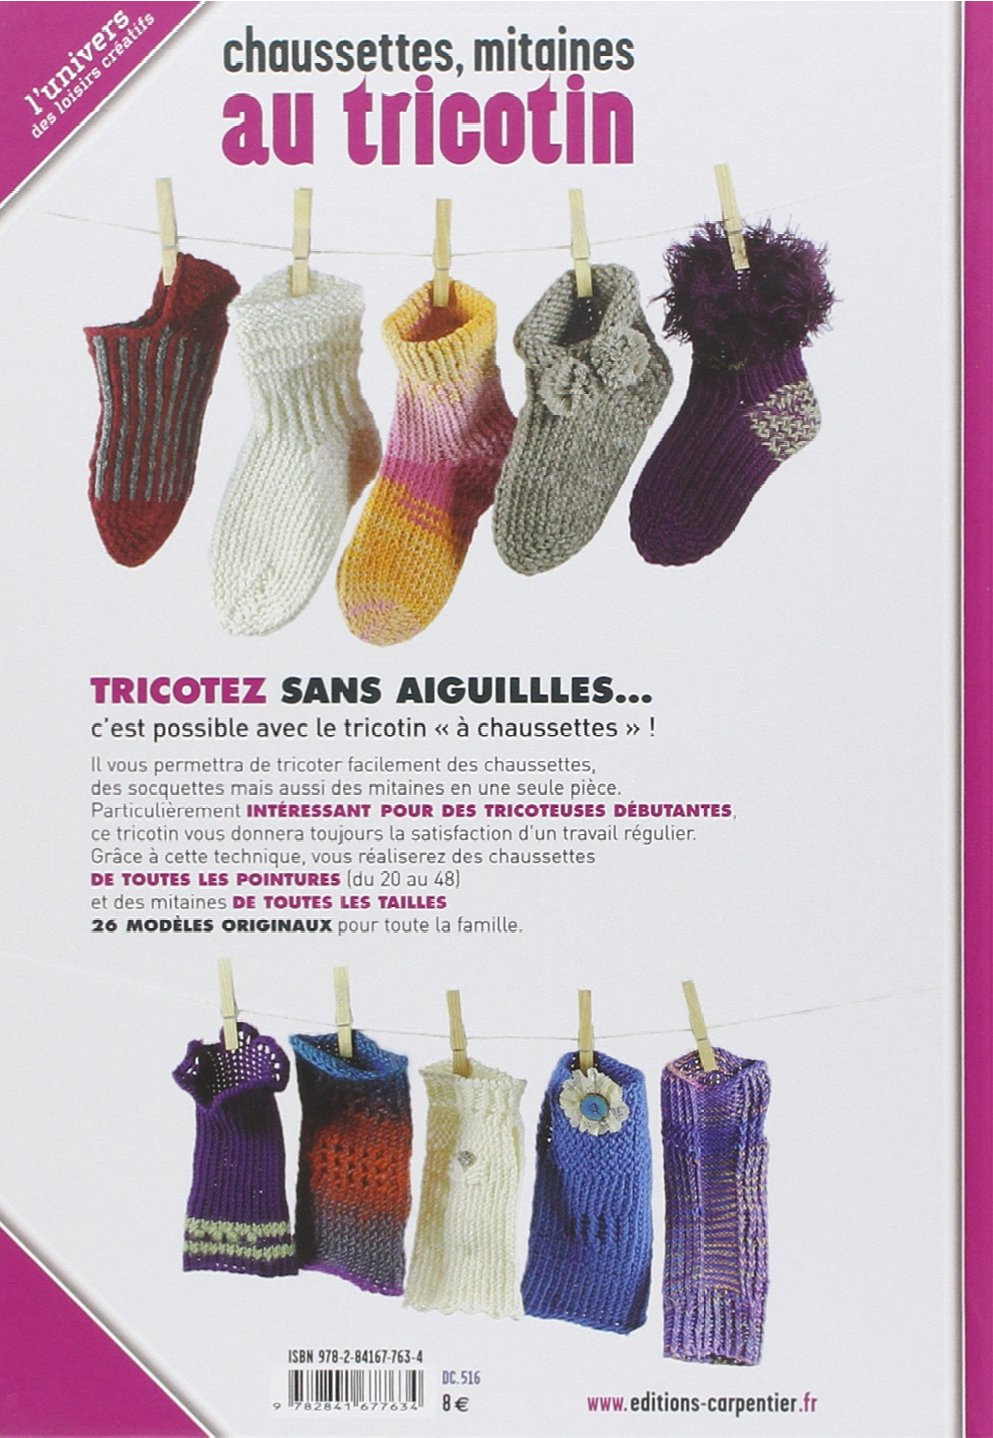 Tricotin chaussette